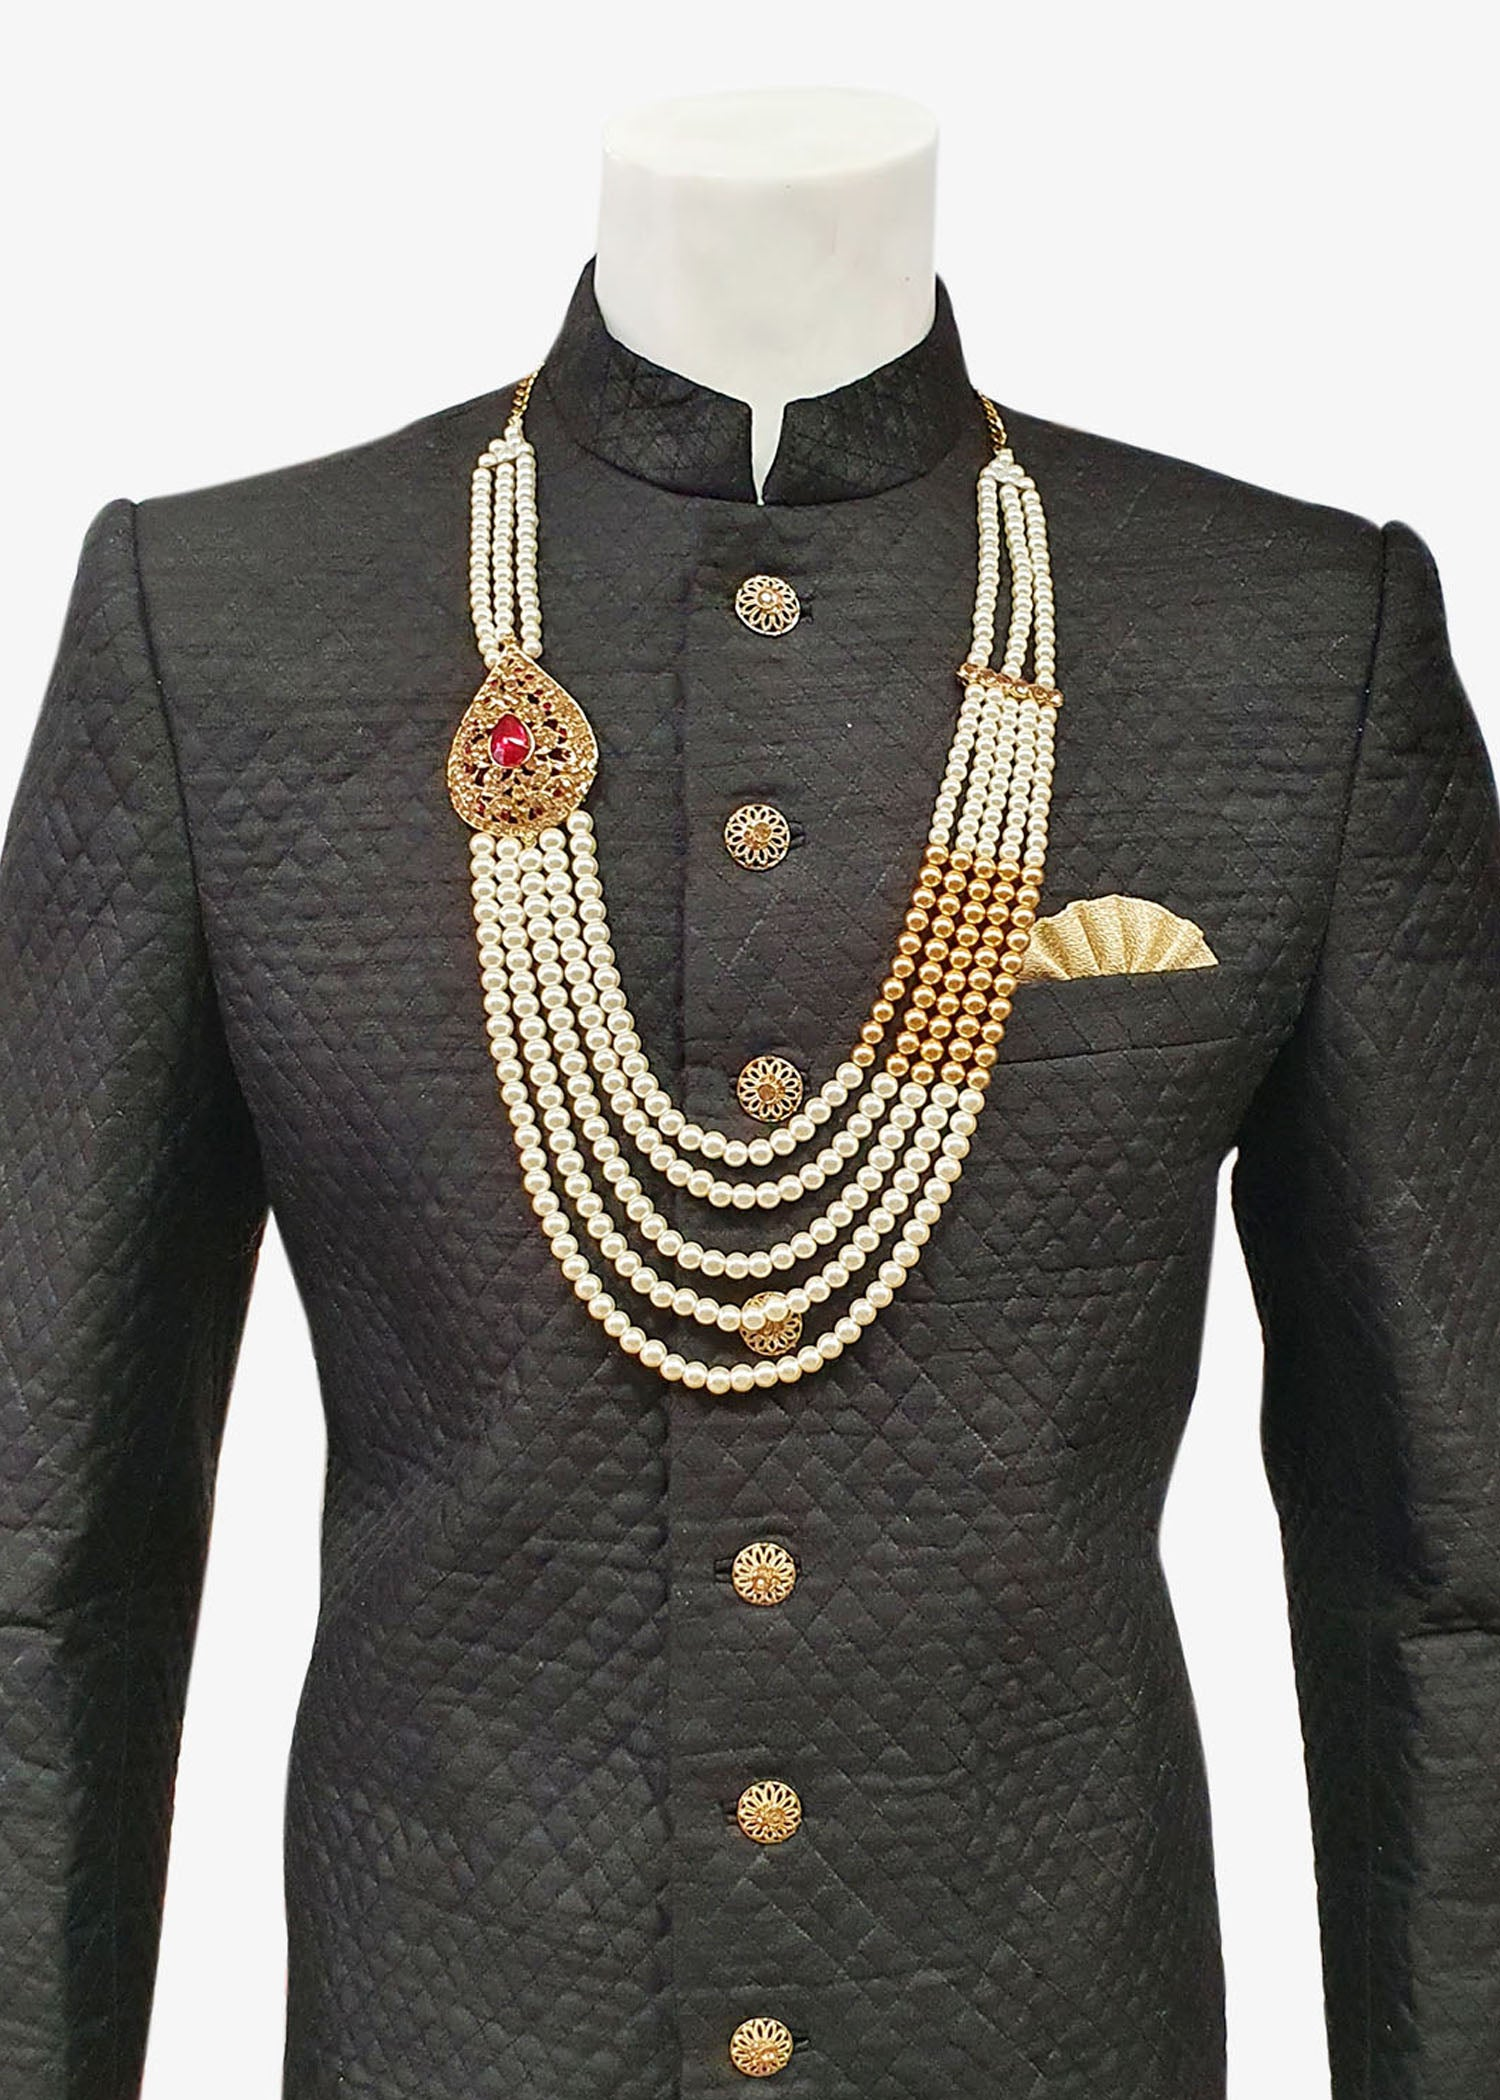 Men's Light Gold with Broach Necklace